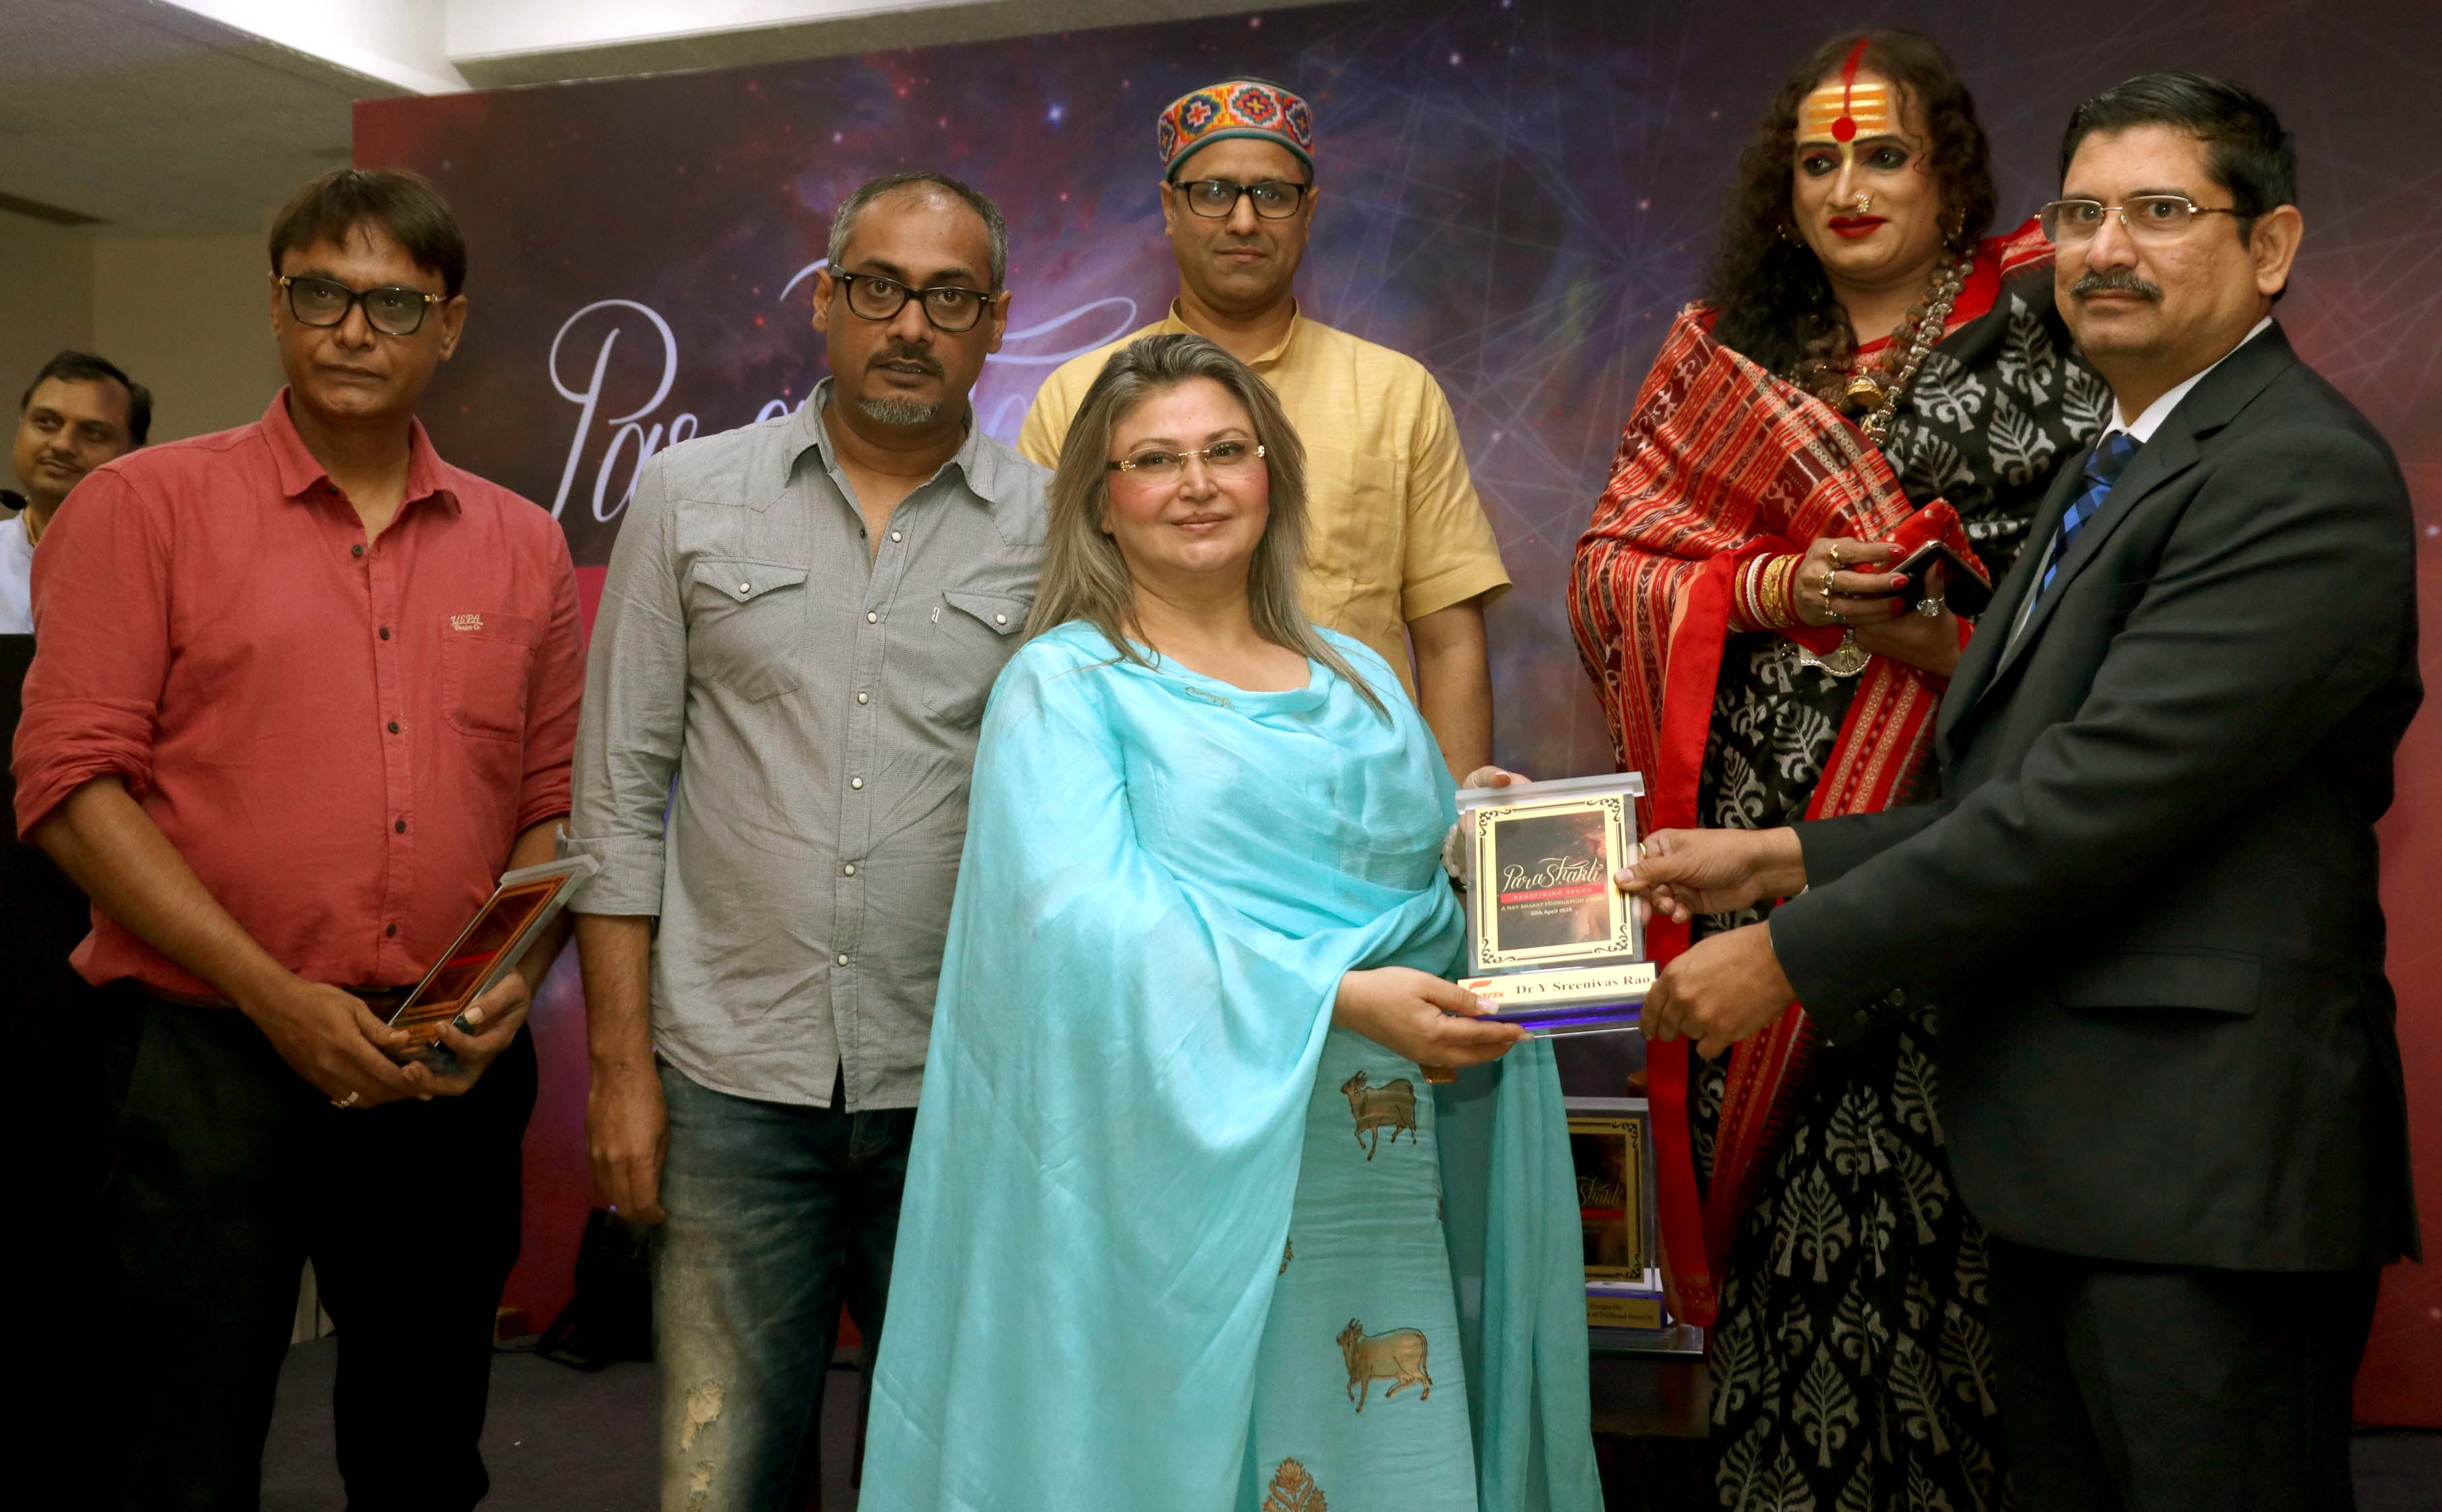 Parashakti-Redefining Space launched by renowned group of activists to address women issues in the Film and TV industry